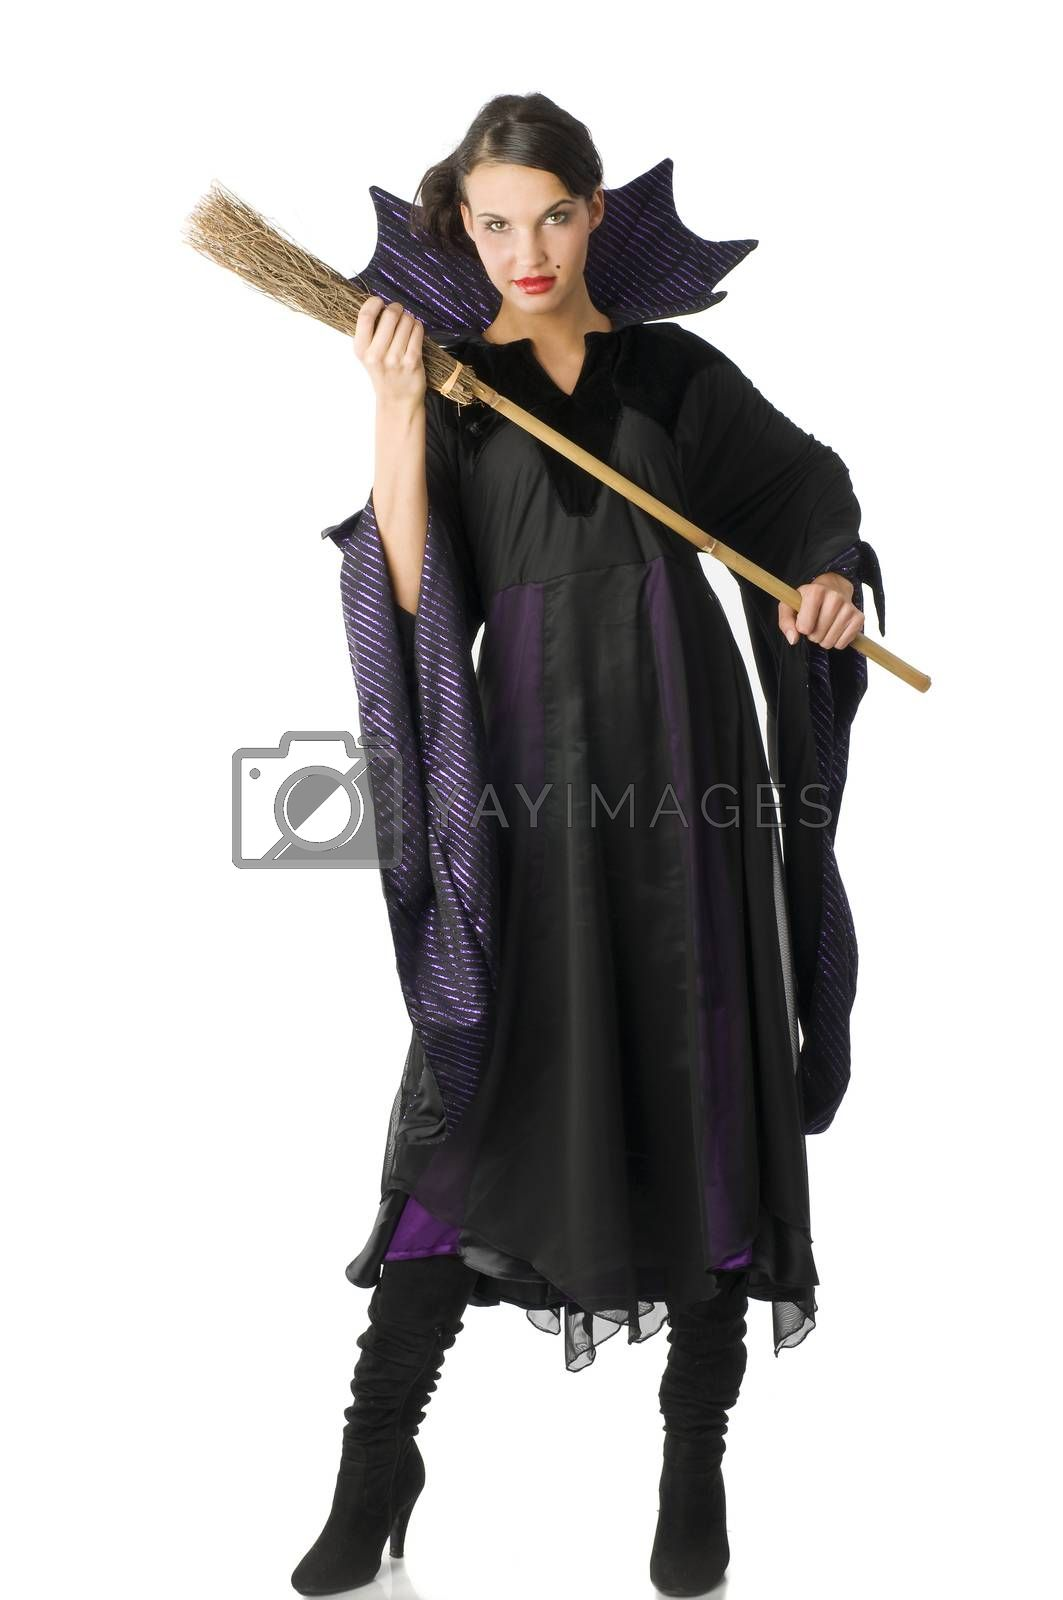 Royalty free image of the witch with broom by fotoCD